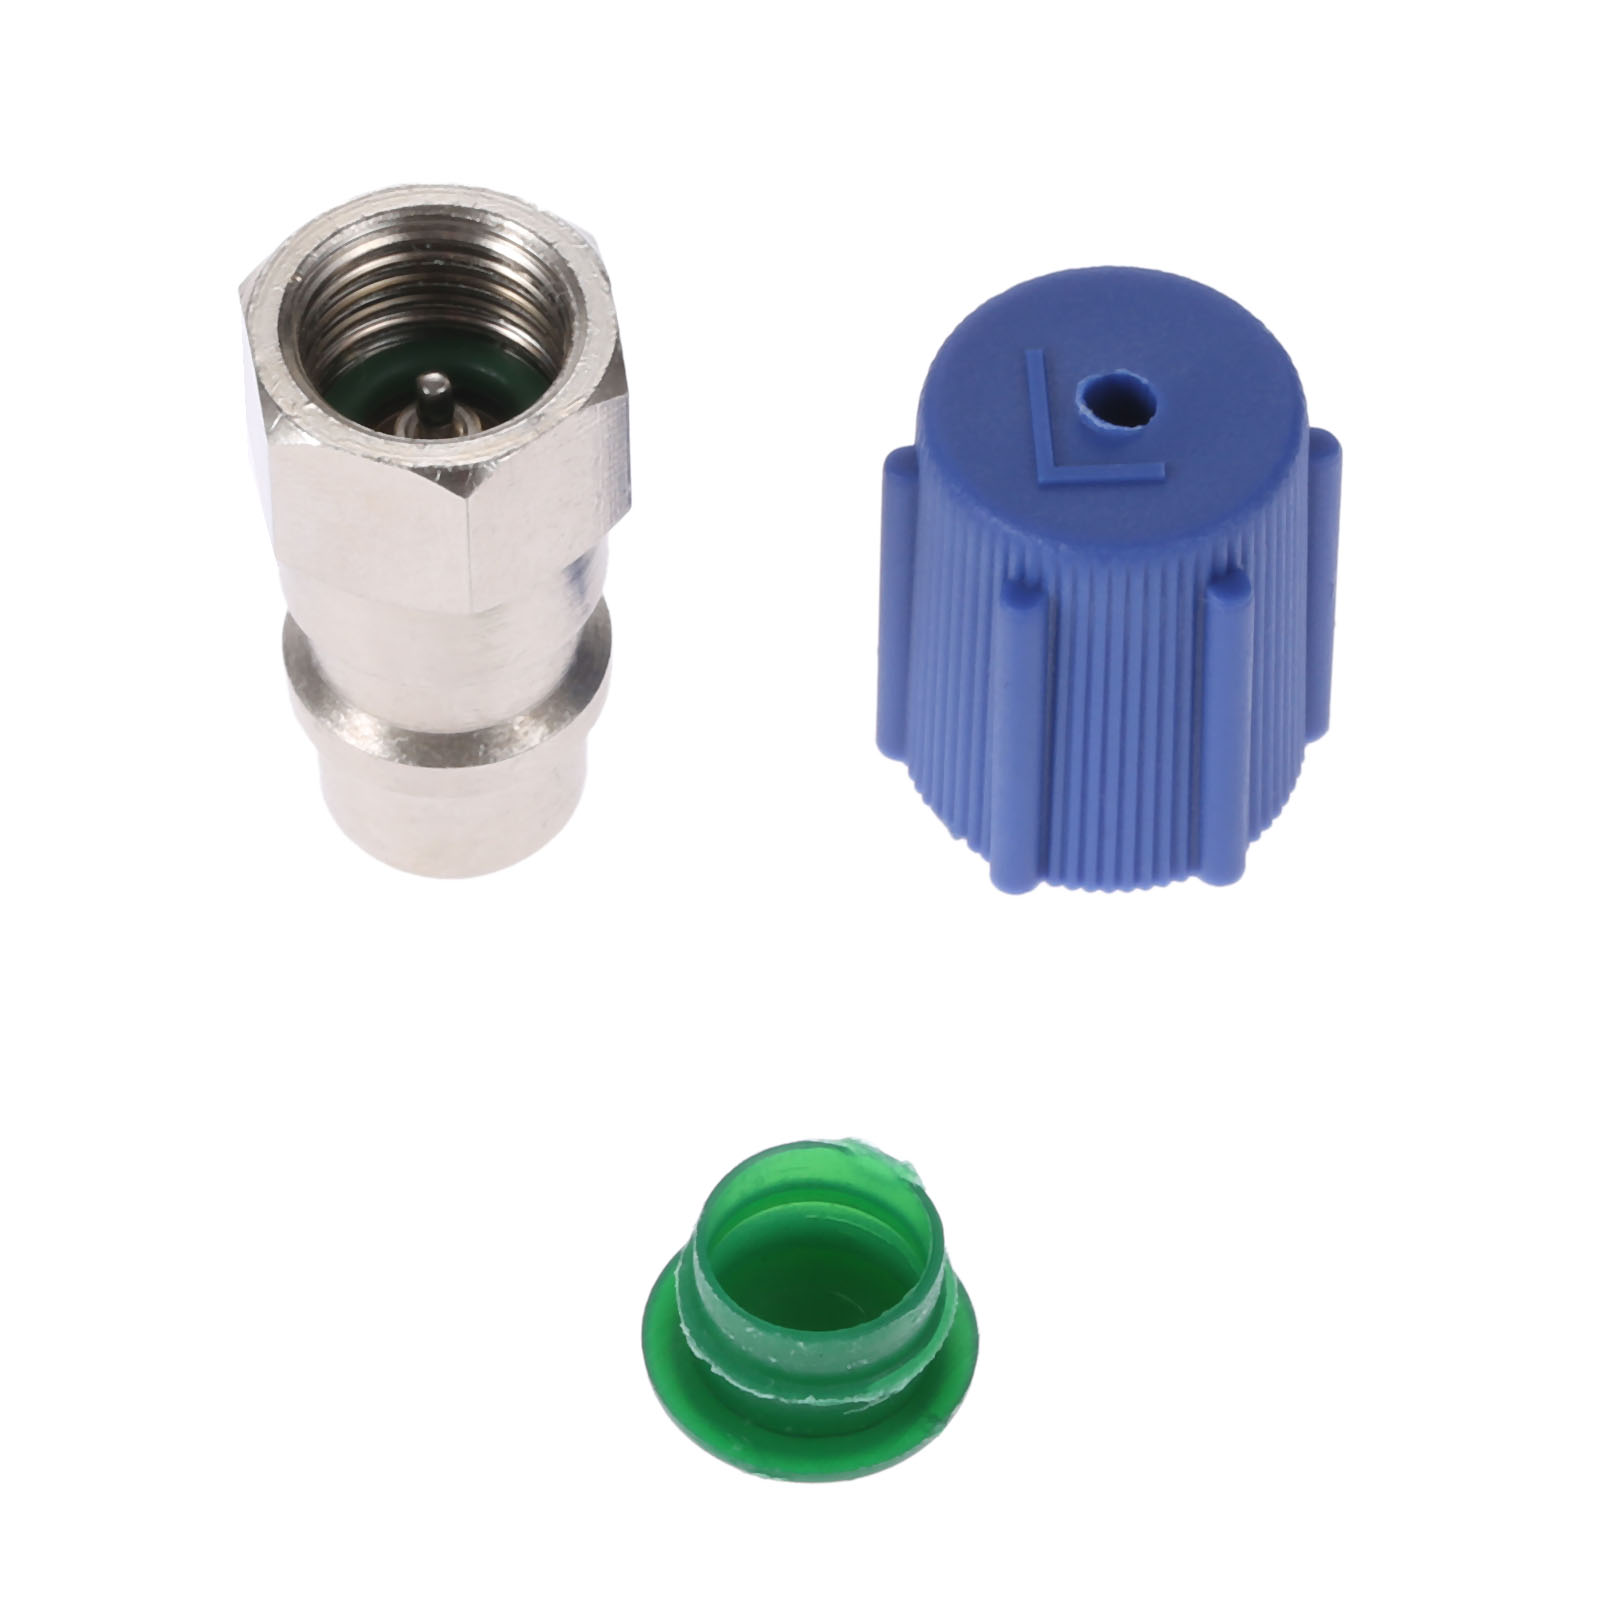 Image 5 - Yetaha Car A/C 3/8 7/16 Straight Adapters R12 R22 To R134a With Removable Valve Core & Service Port Caps-in Air-conditioning Installation from Automobiles & Motorcycles